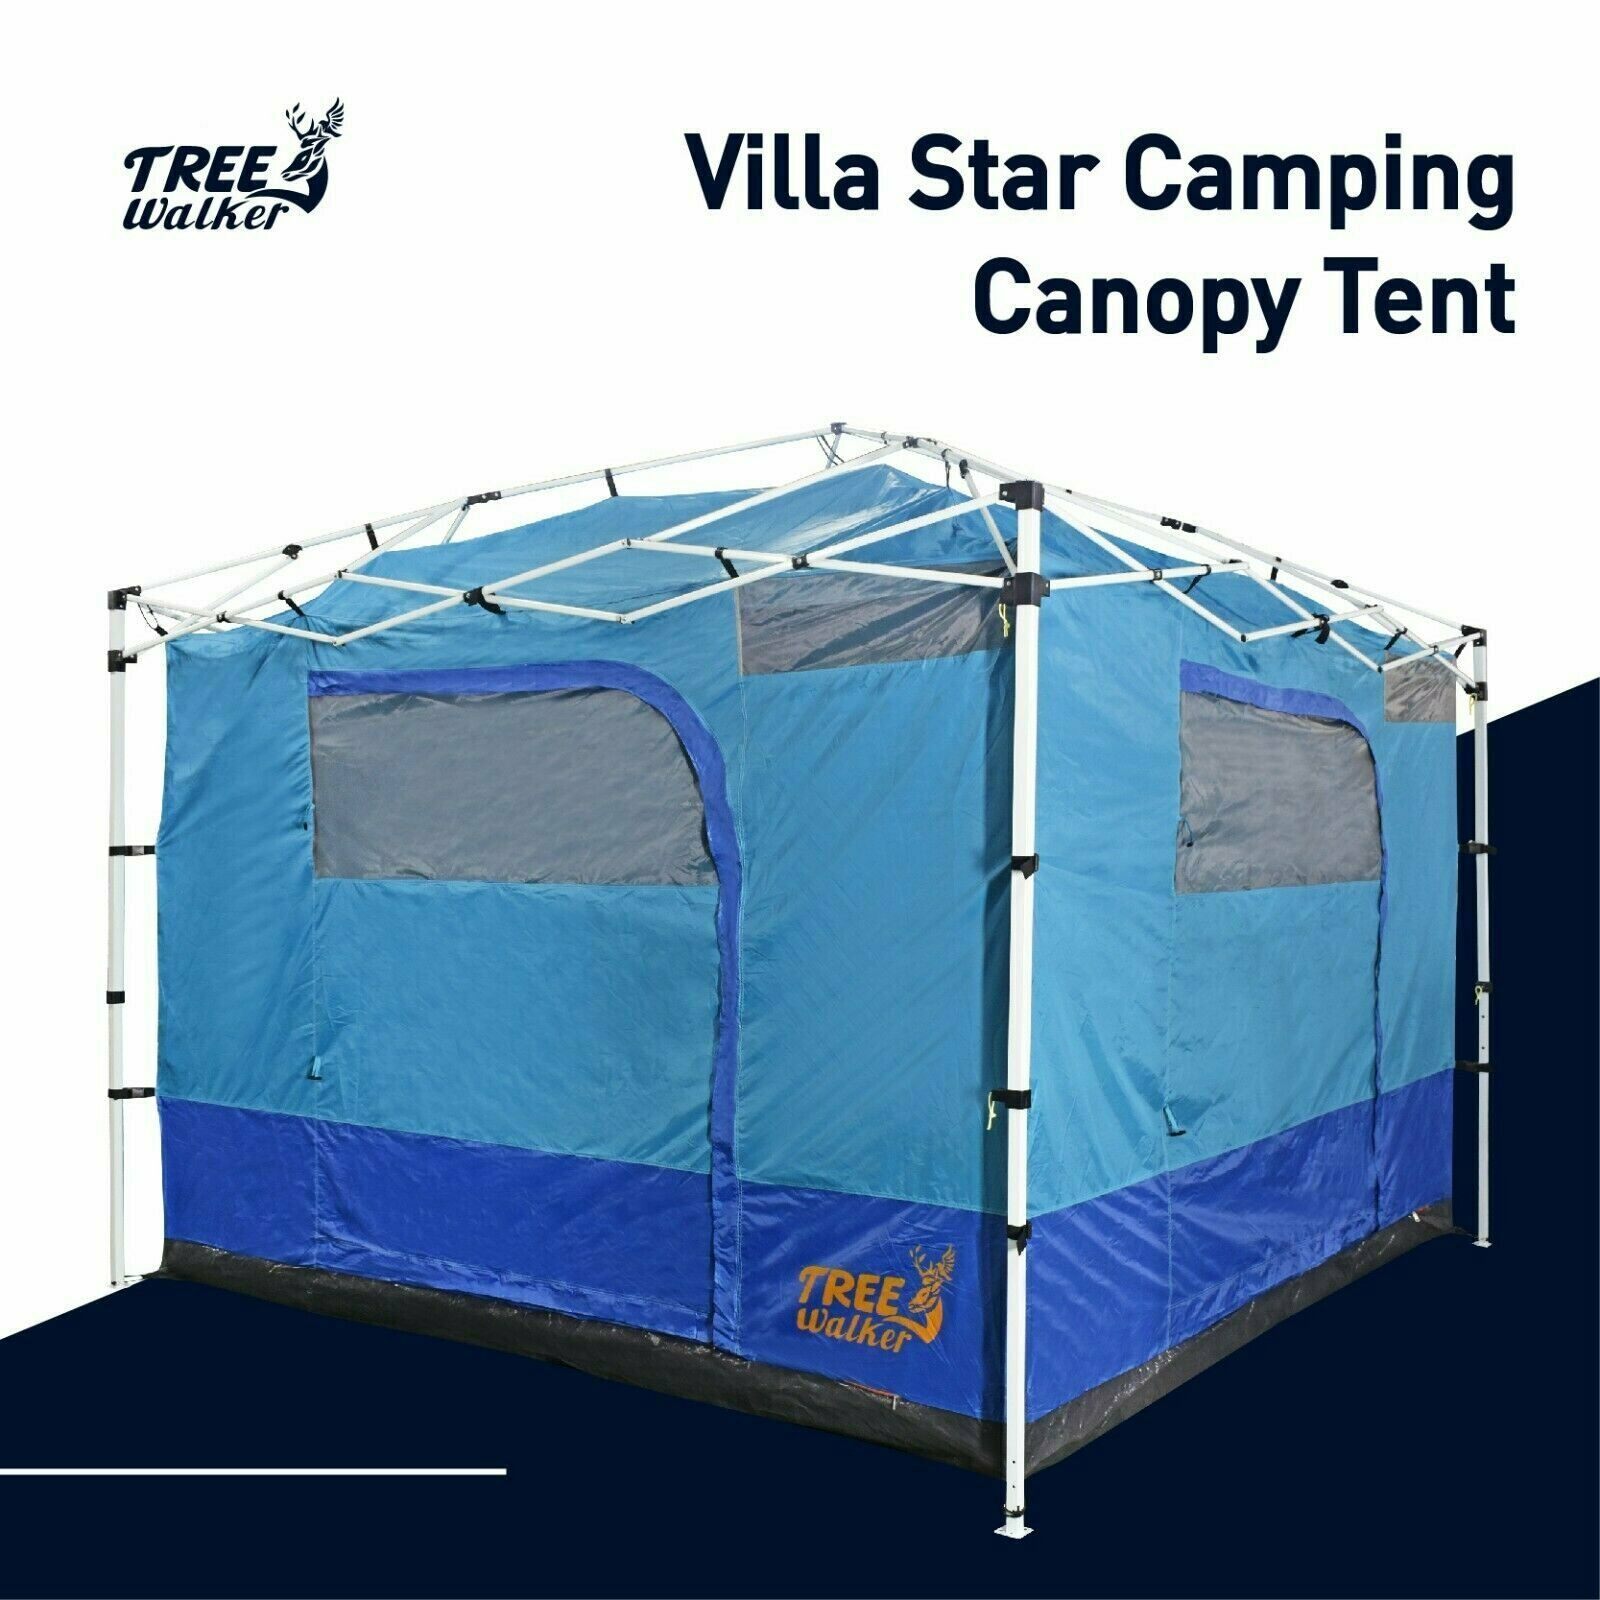 Villa Star Camping Canopy Tent Standing Room Hanging Connect Tents Ebay